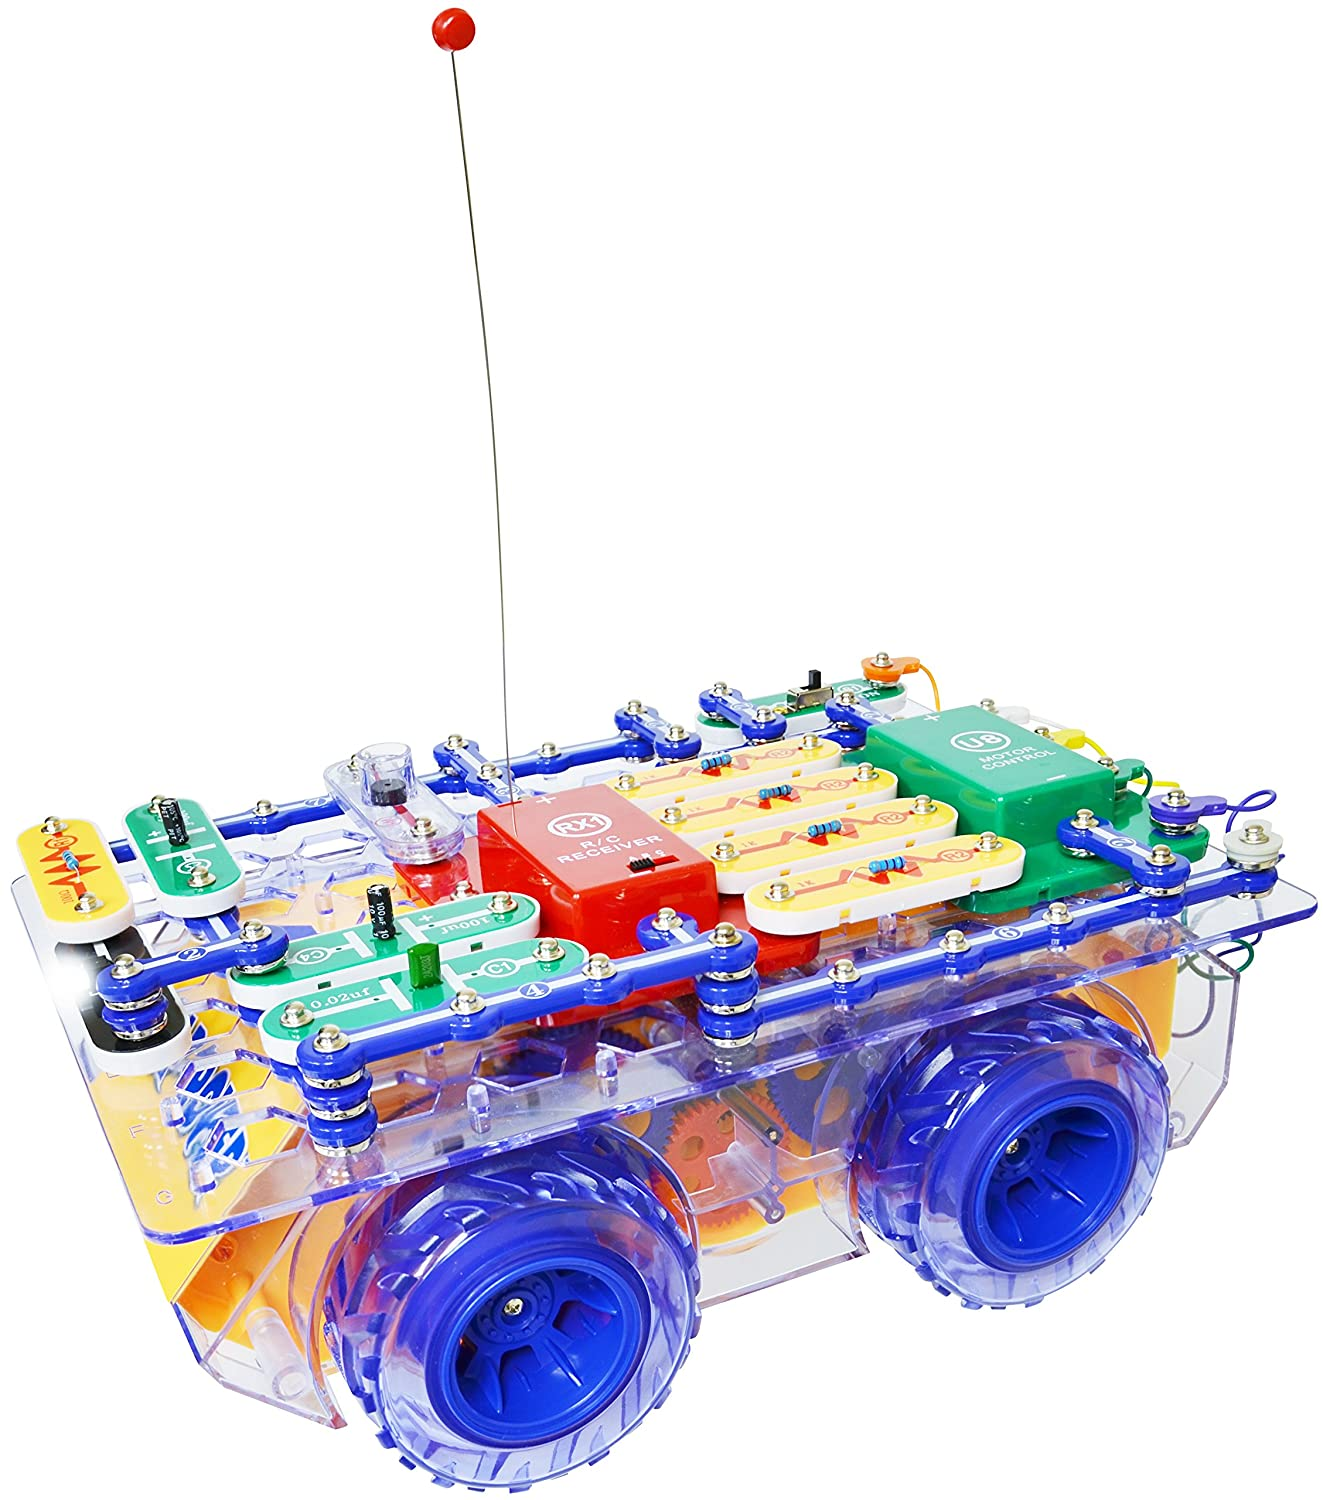 Snap Circuits R C Rover Electronics Exploration Kit Elenco Pro Sc500 Discovery Science 23 Fun Stem Projects 4 Color Project Manual 30 Modules Unlimited